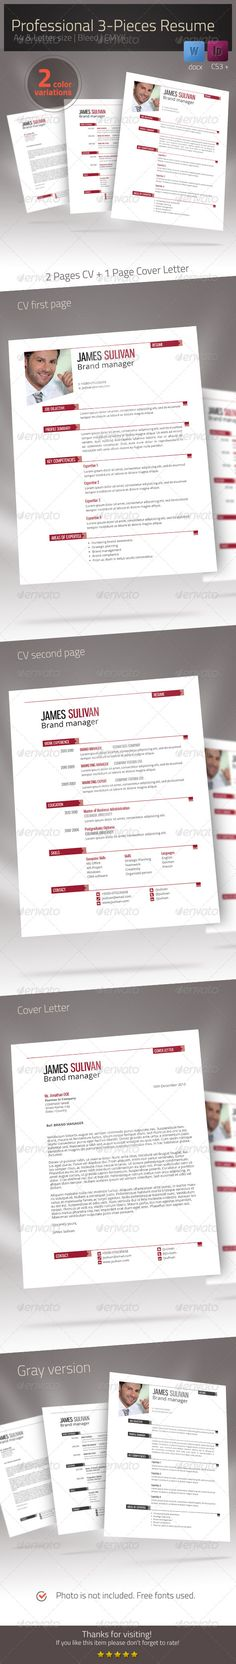 Technical Sales Resume - Executive resume writer for IT Leaders - free executive resume template